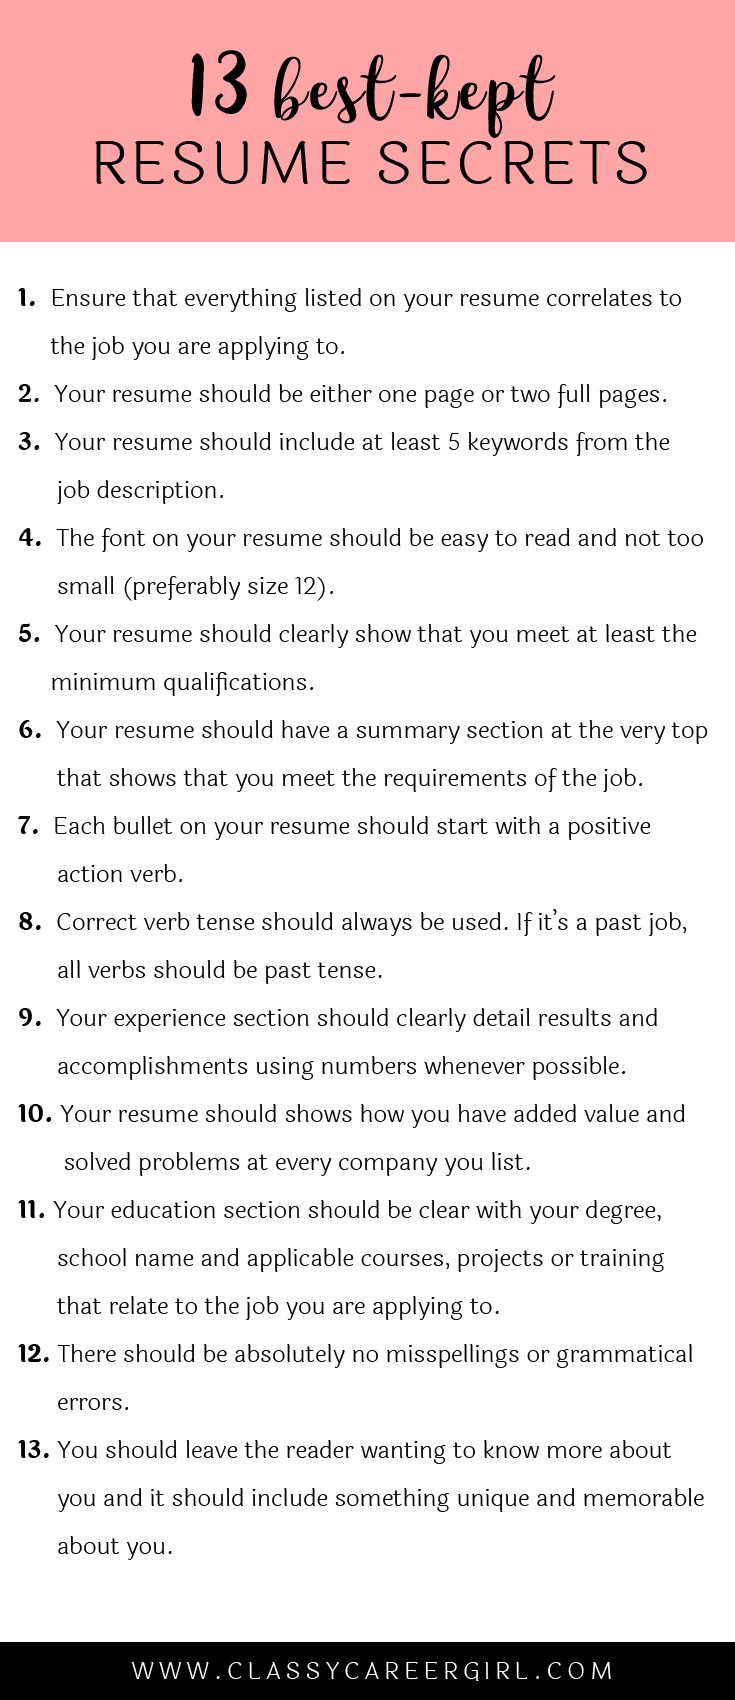 Opposenewapstandardsus  Pretty  Ideas About Resume On Pinterest  Cv Format Resume Cv And  With Foxy Some Hiring Managers Will Toss Your Resume Out If You Dont Know These  With Lovely Teacher Resume Objective Also Landscaping Resume In Addition Lvn Resume And Mcdonalds Resume As Well As Another Word For Resume Additionally Accomplishments On Resume From Pinterestcom With Opposenewapstandardsus  Foxy  Ideas About Resume On Pinterest  Cv Format Resume Cv And  With Lovely Some Hiring Managers Will Toss Your Resume Out If You Dont Know These  And Pretty Teacher Resume Objective Also Landscaping Resume In Addition Lvn Resume From Pinterestcom